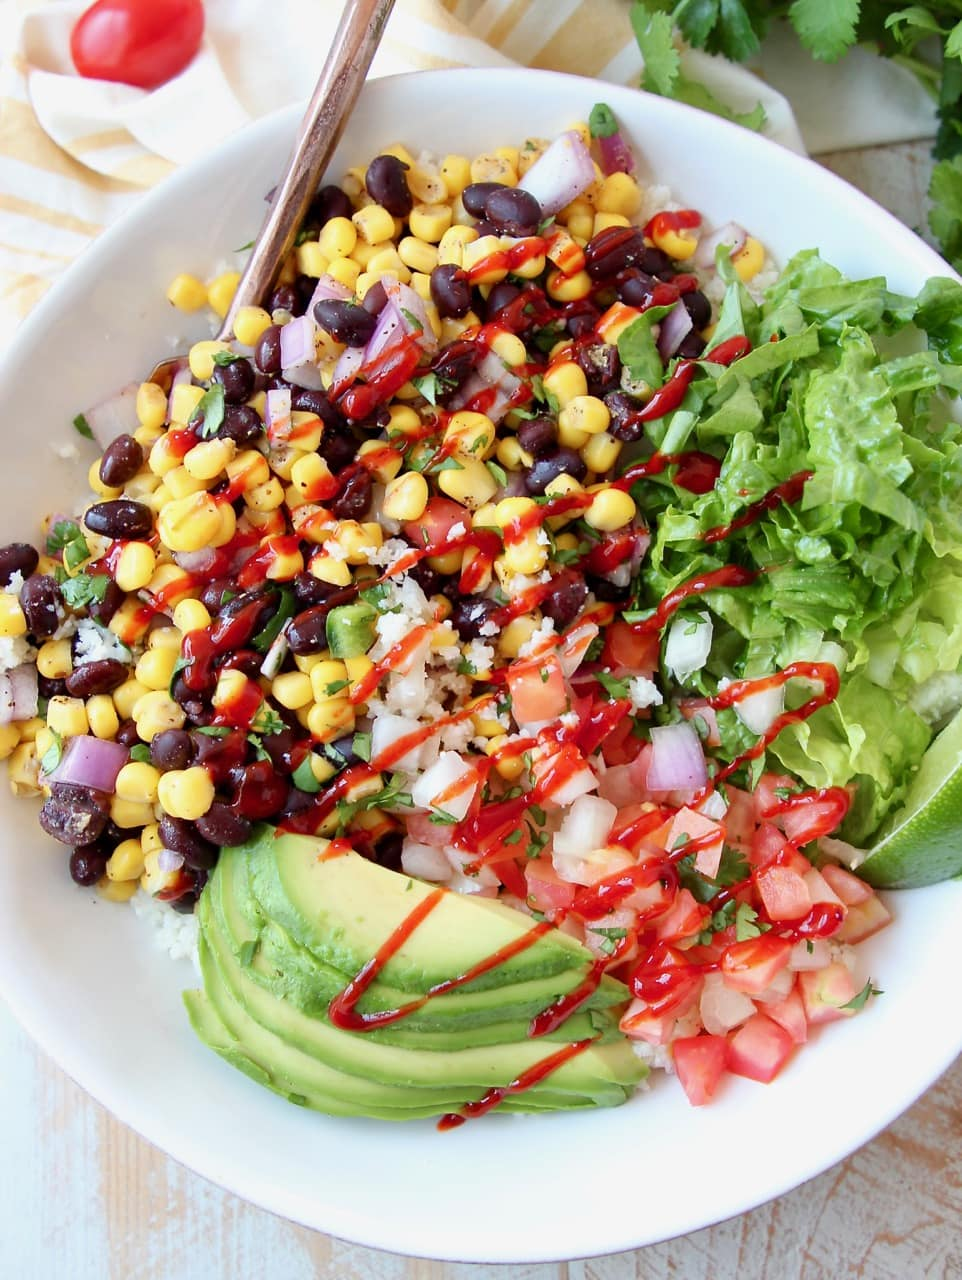 Burrito bowl with avocado, corn, tomatoes and black beans, topped with a drizzle of hot sauce in a white bowl